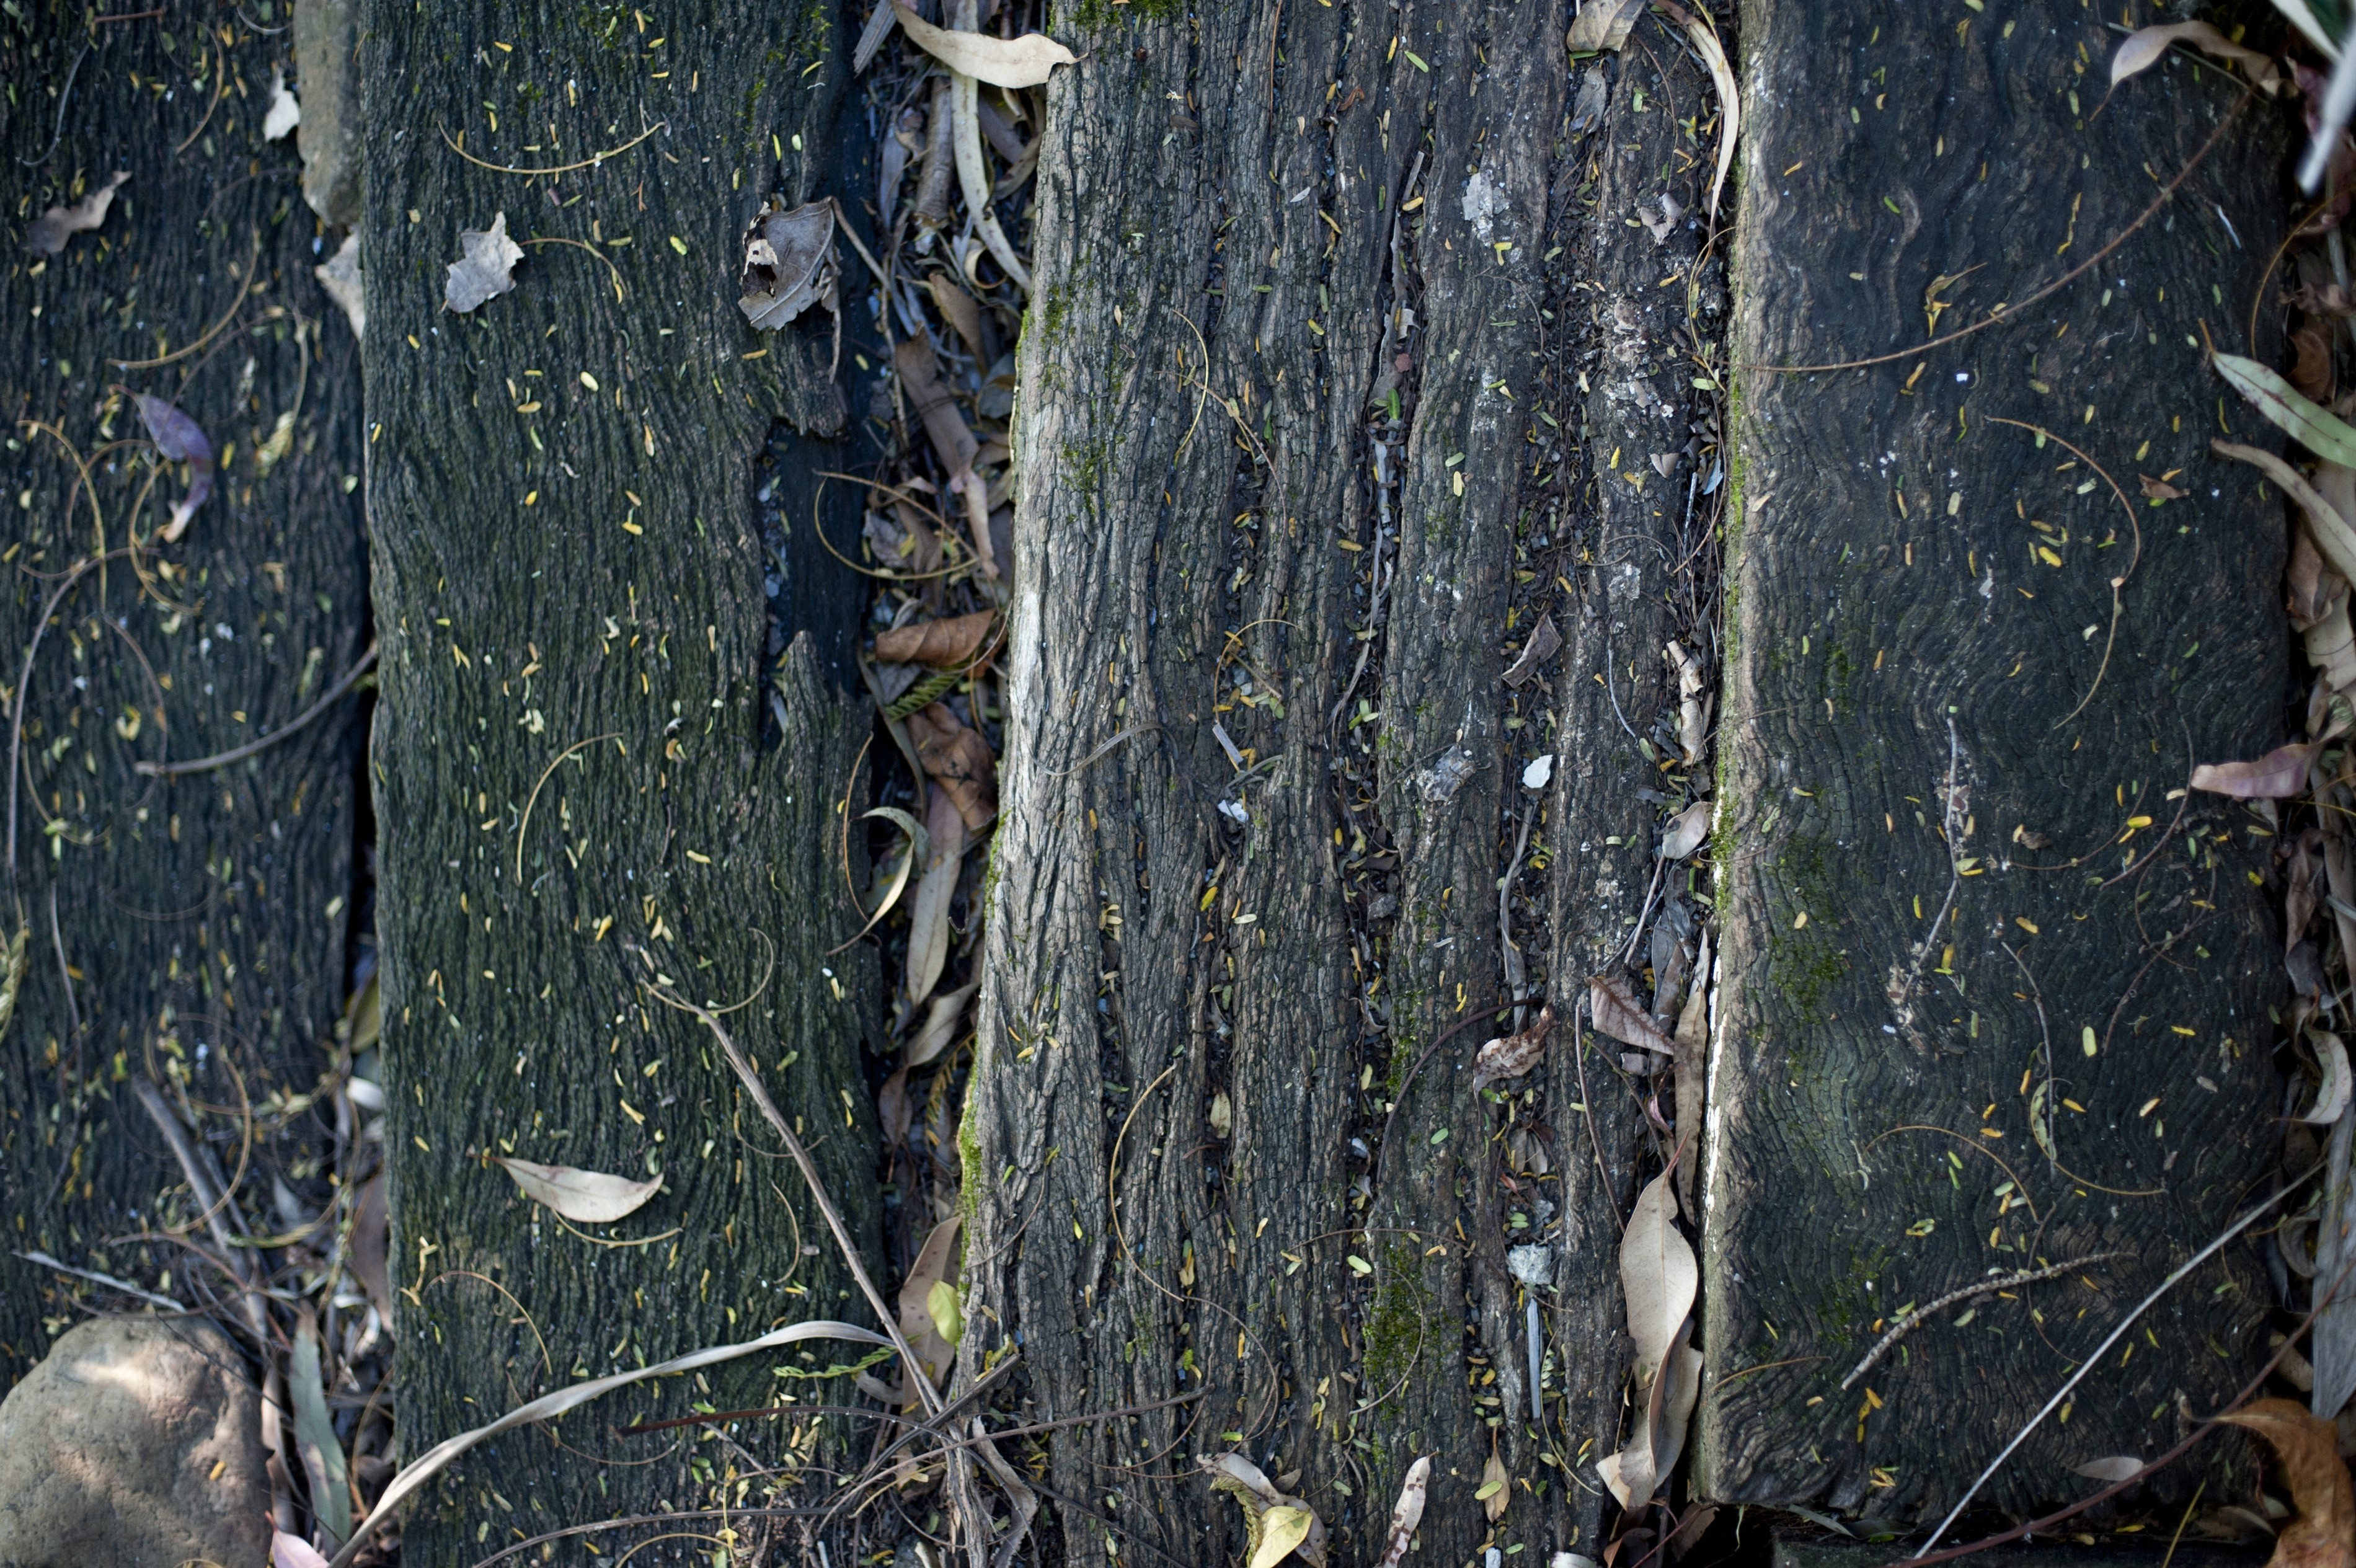 Background texture of old slats or boards of rotten wood with a weathered rough surface